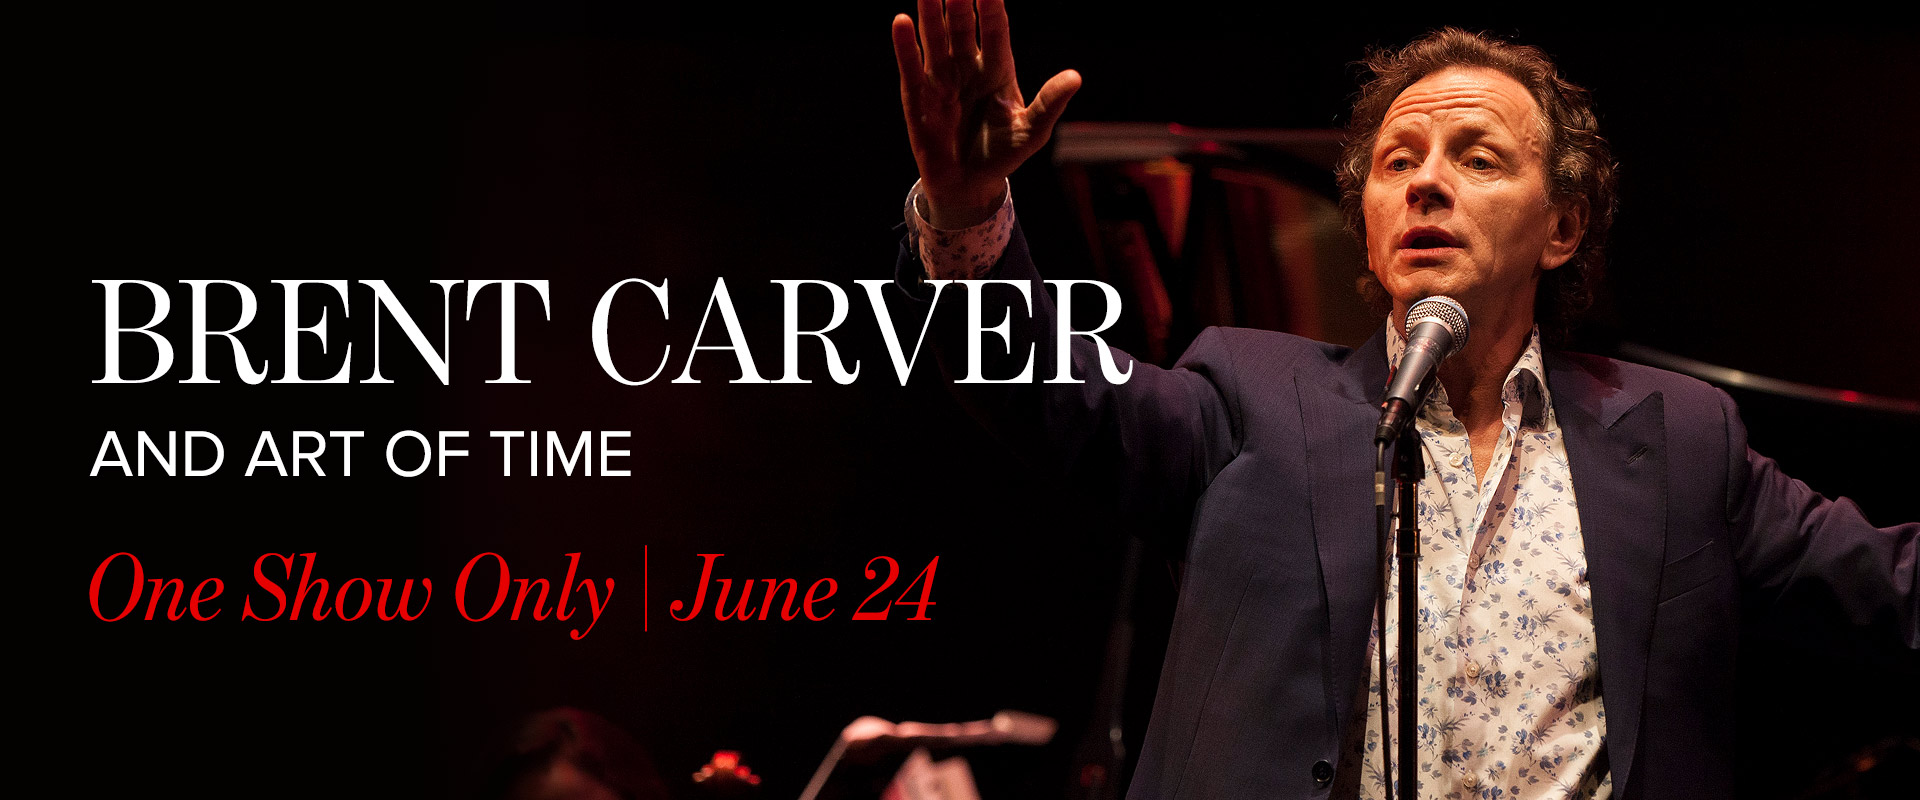 Publicity image featuring brent carver linking to his concert event page